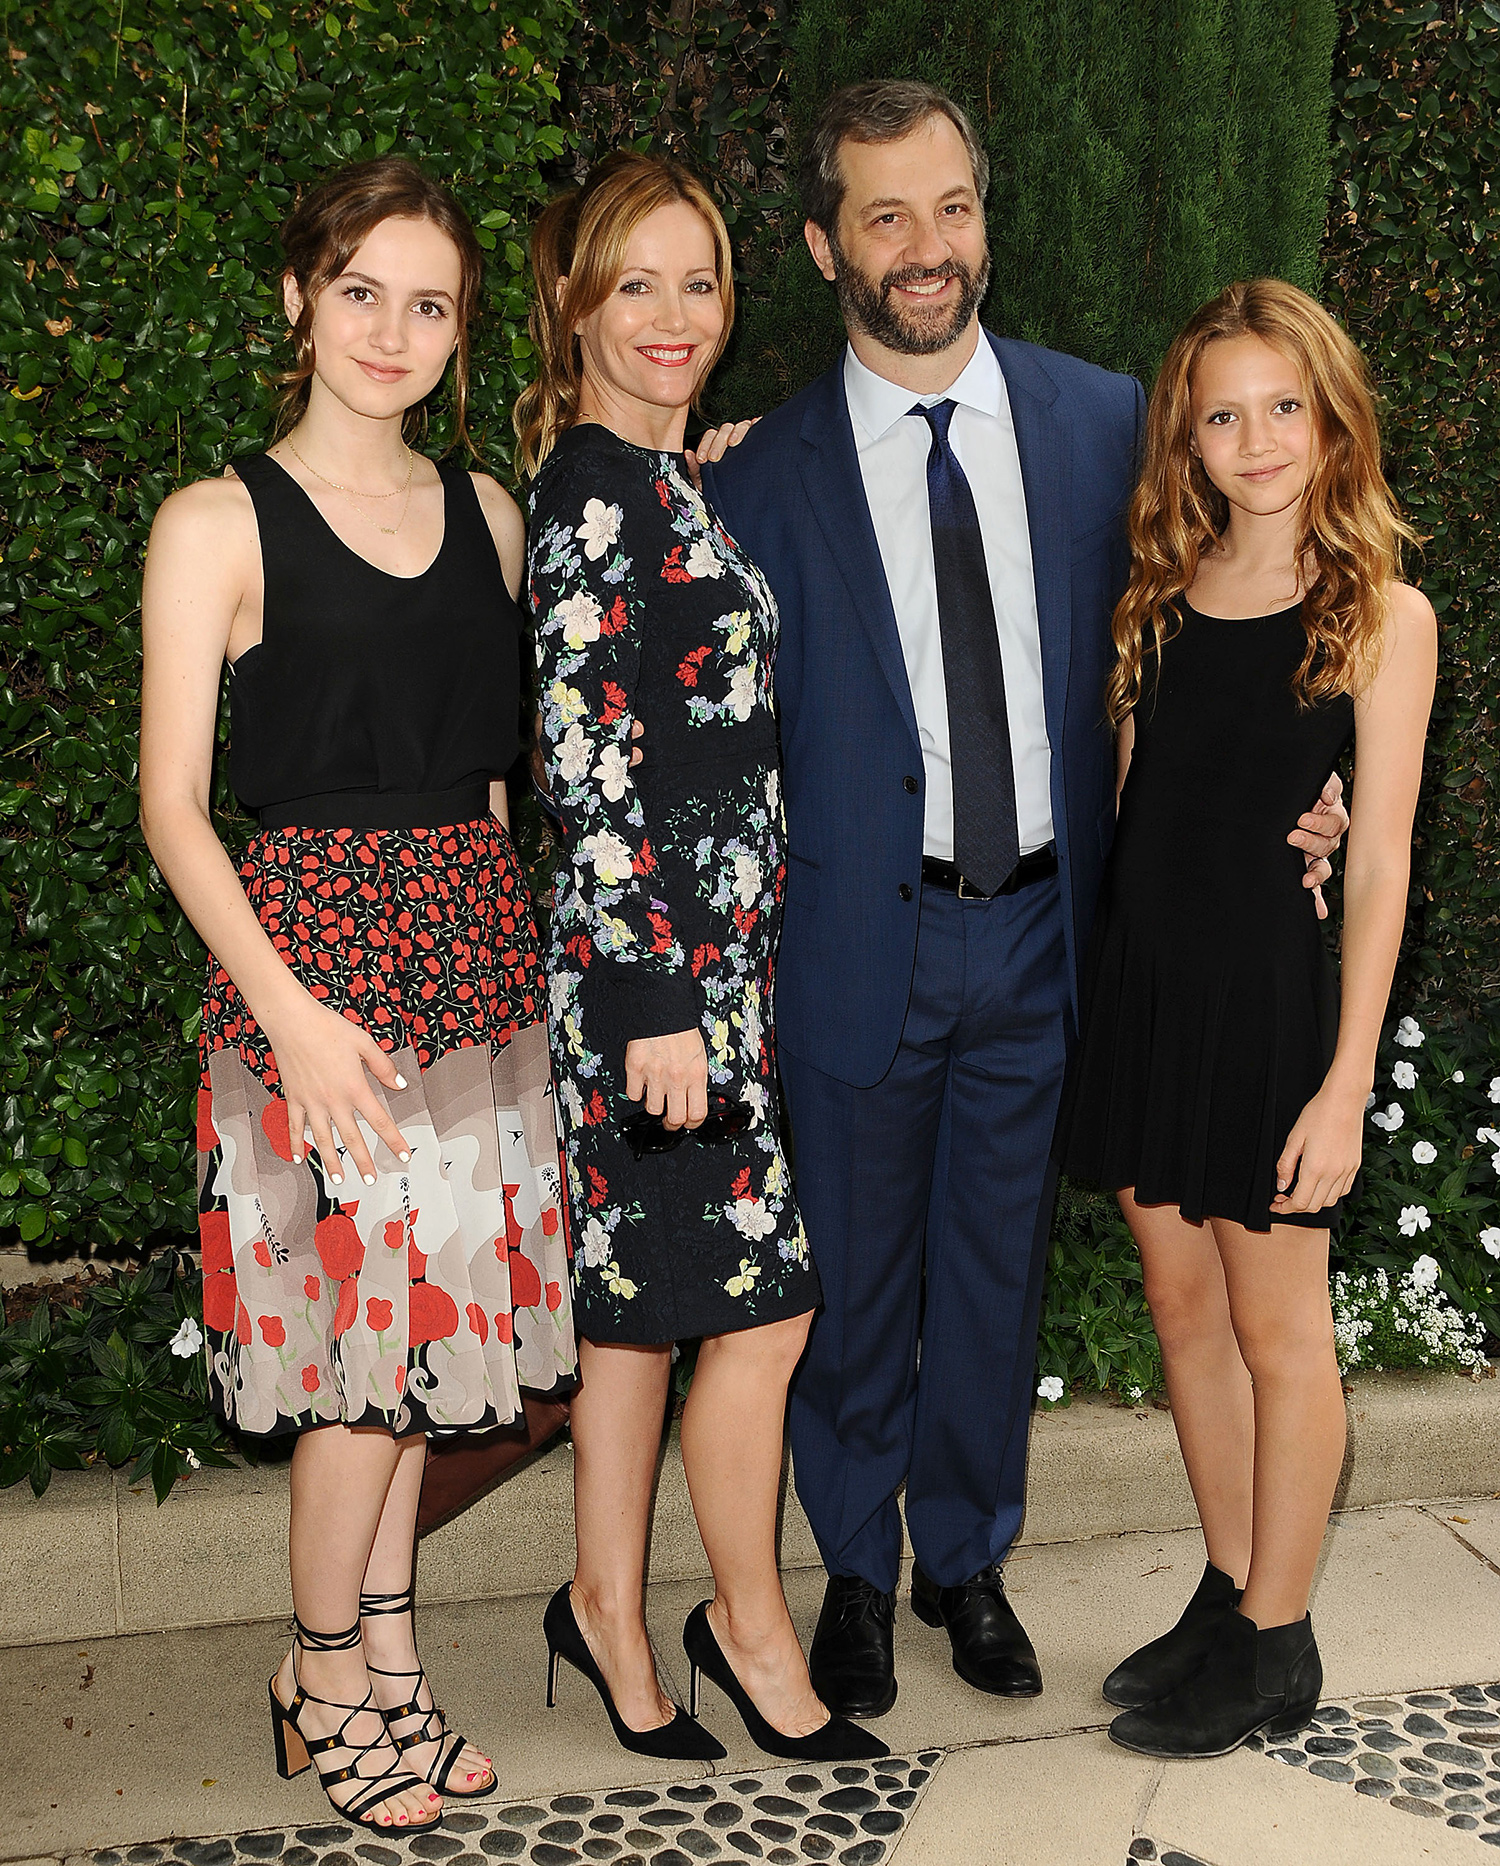 Leslie Mann and Judd Apatow with daughters Maude and Iris